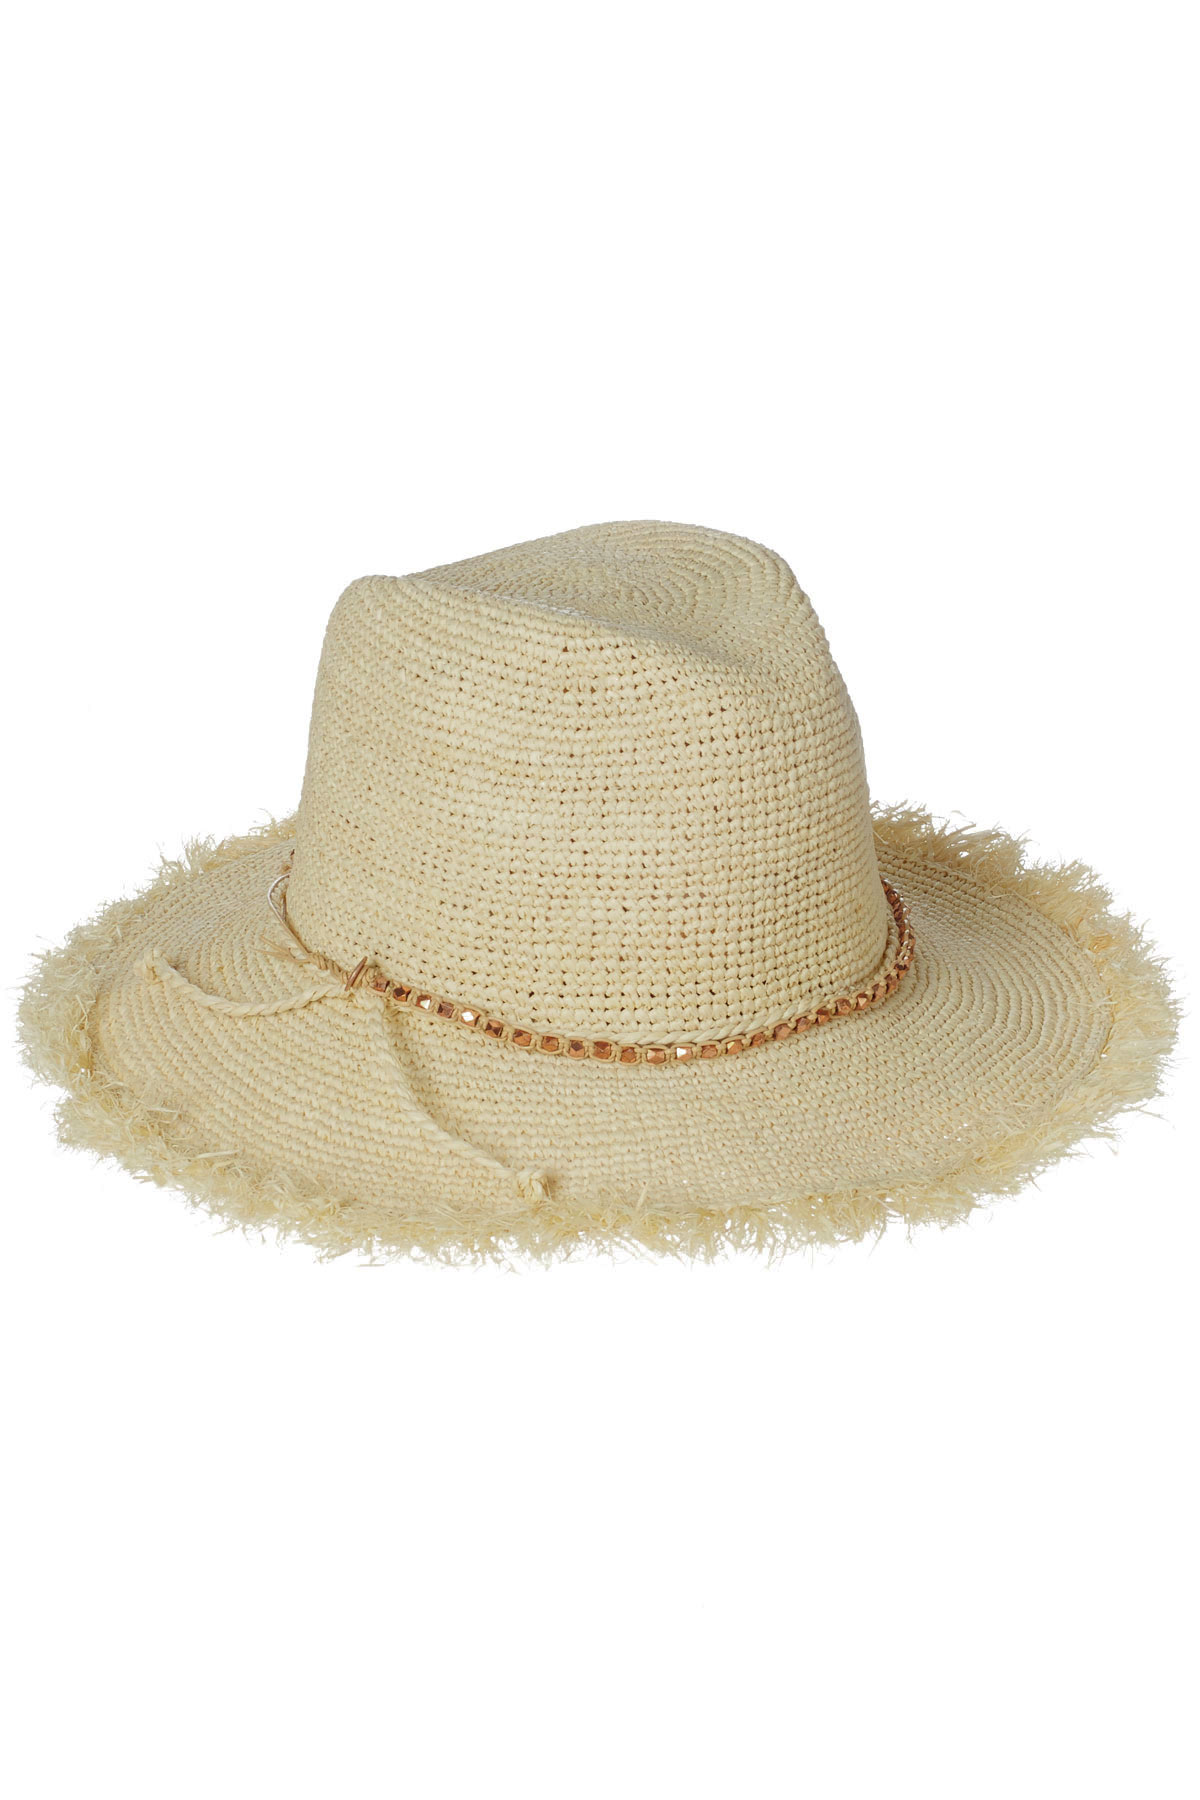 Callie Beaded Trim Fedora - Bleached Almond 3